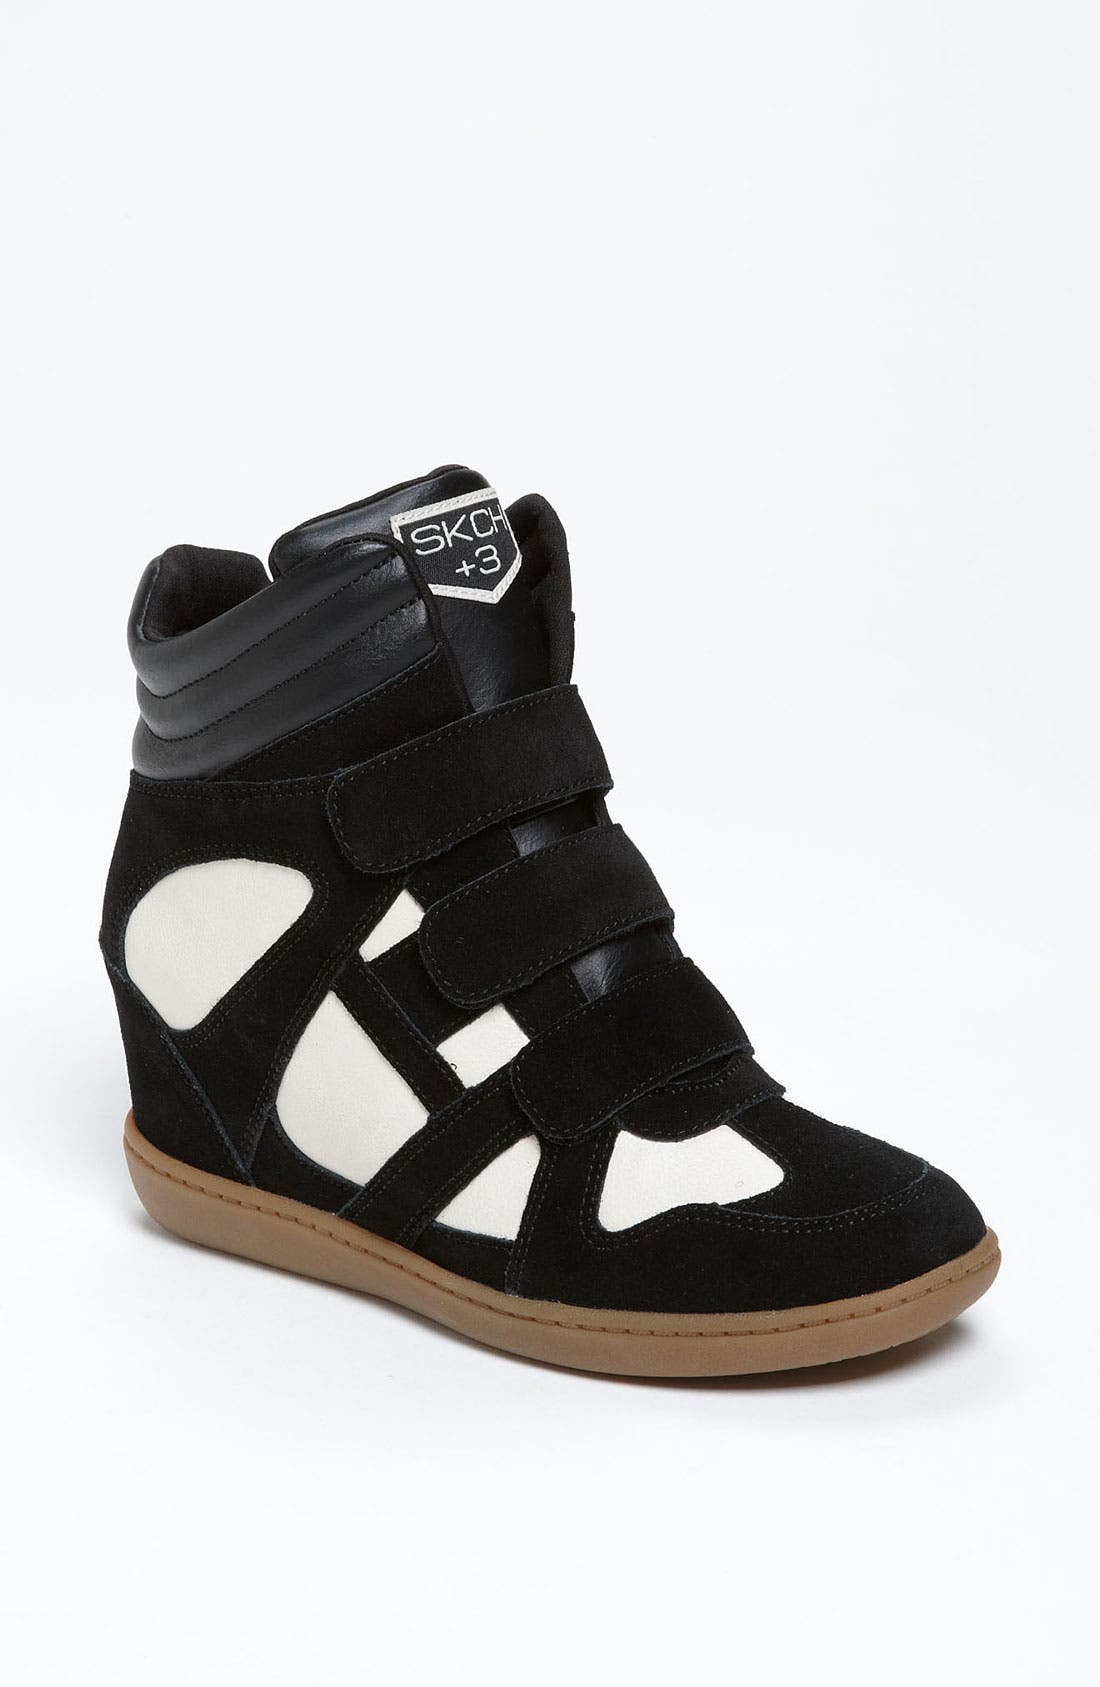 Main Image - SKECHERS 'Raise Your Glass' Wedge Sneaker (Women)